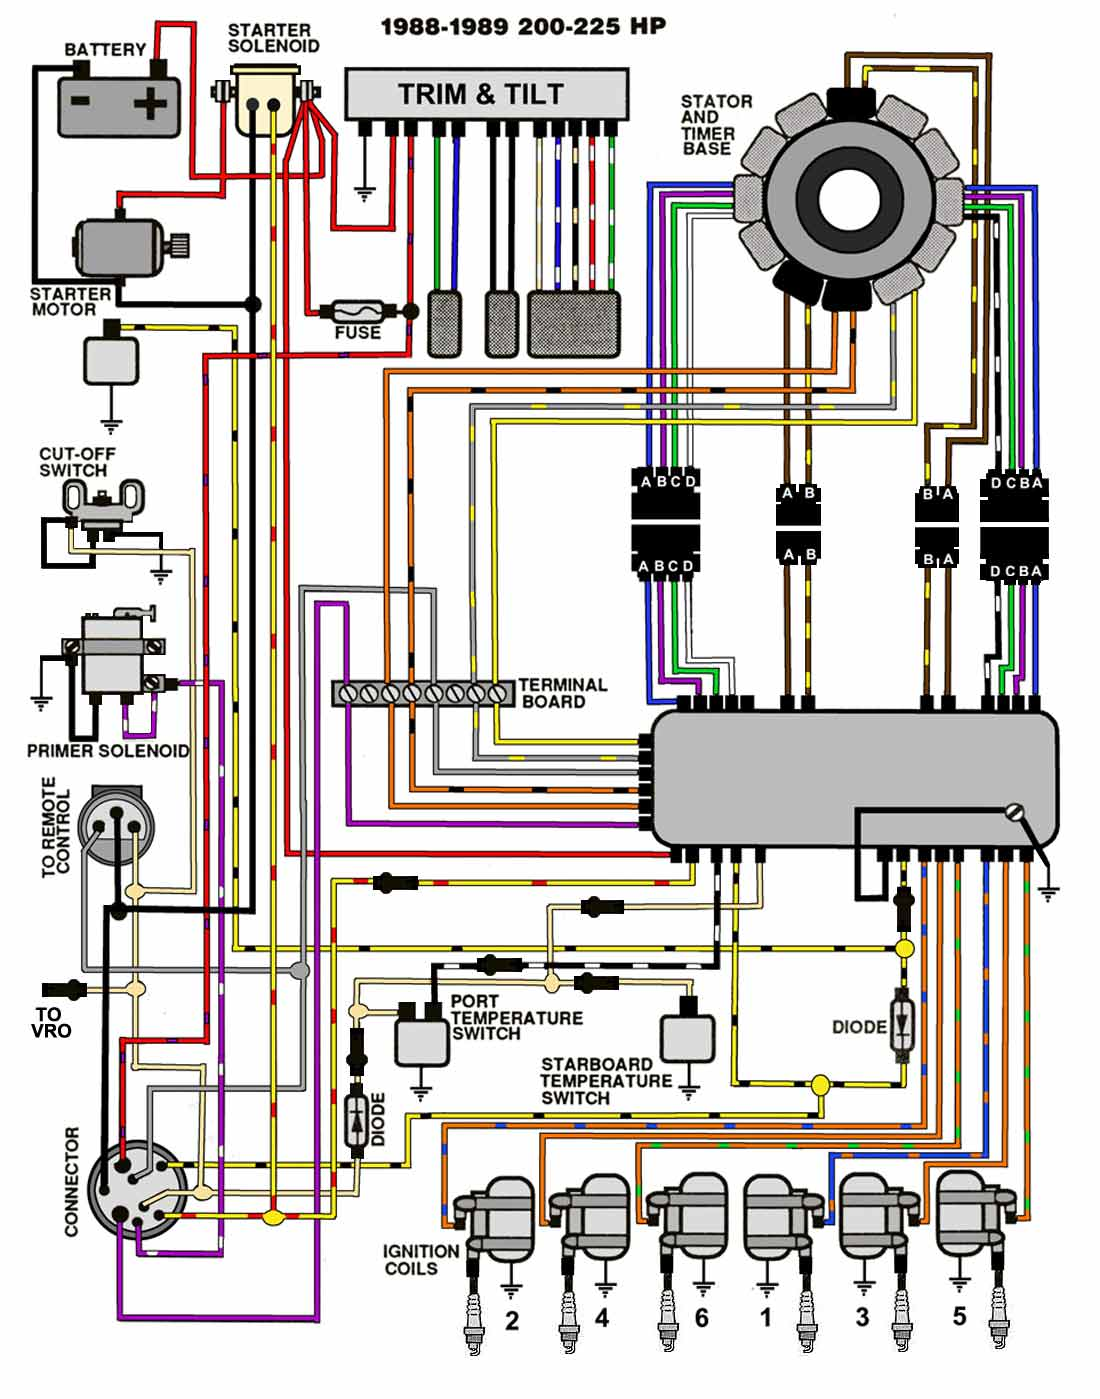 1988_89_200_225 mastertech marine evinrude johnson outboard wiring diagrams evinrude wiring diagram at bayanpartner.co